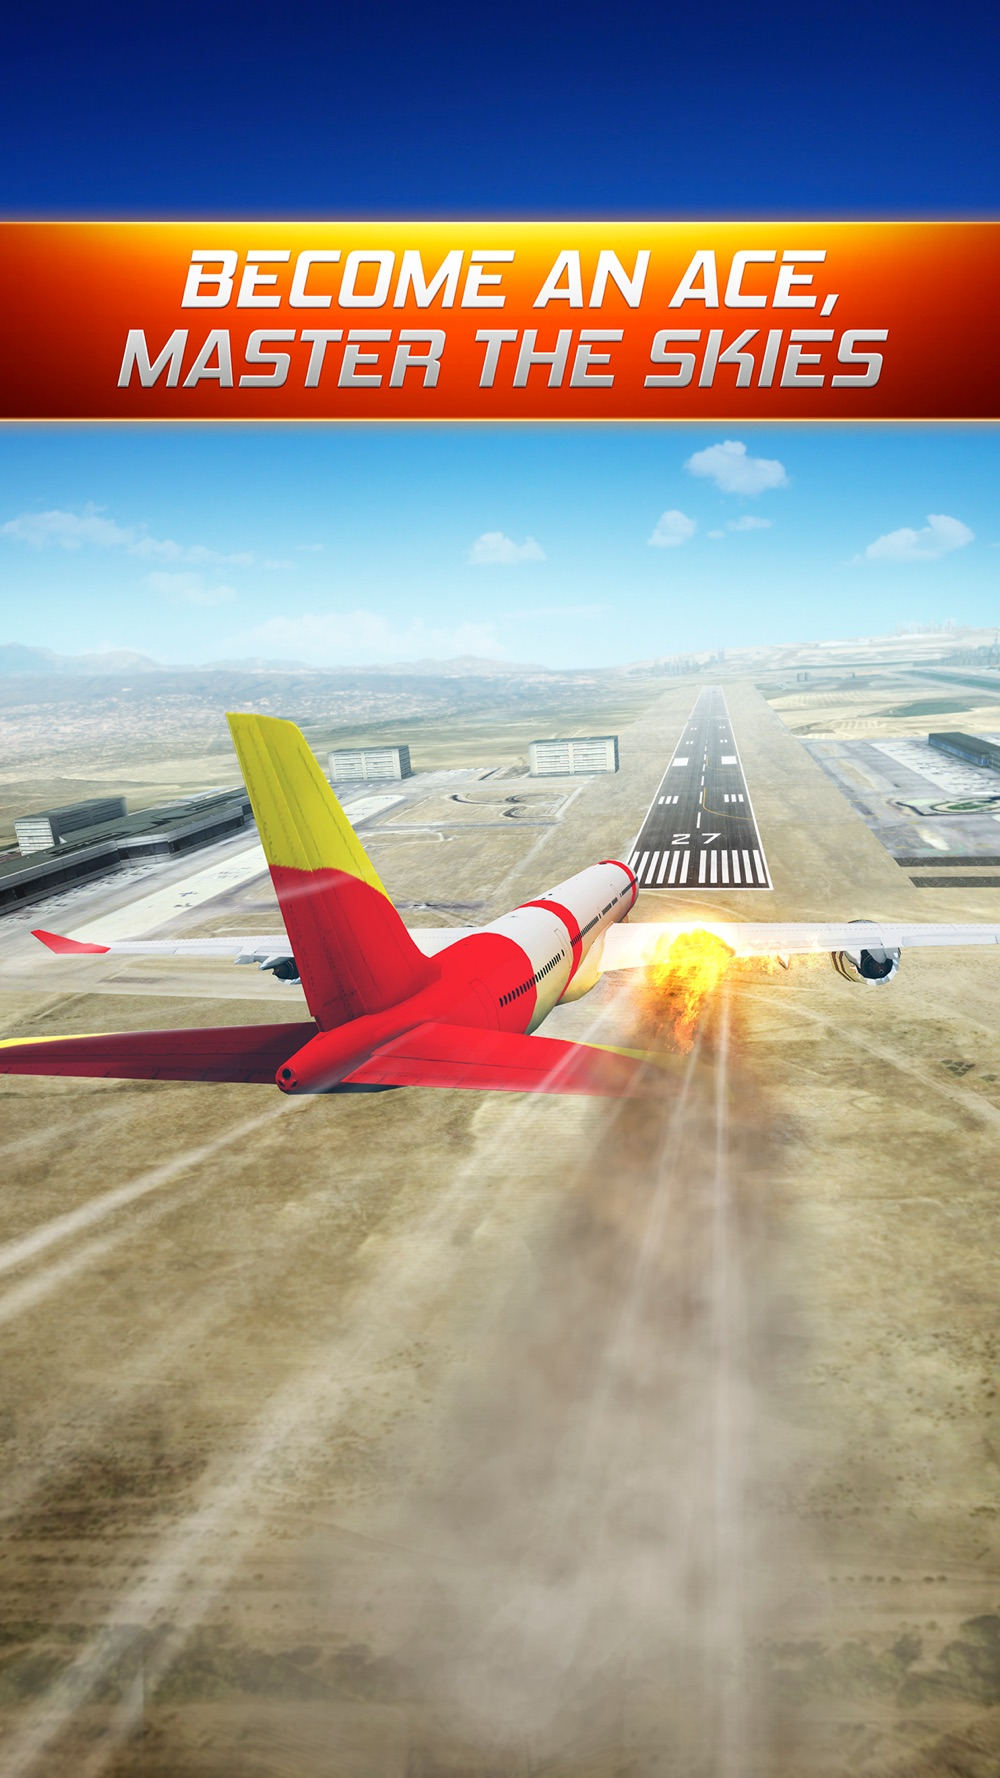 Flight Alert : Impossible Landings Flight Simulator by Fun Games For Free cheat codes